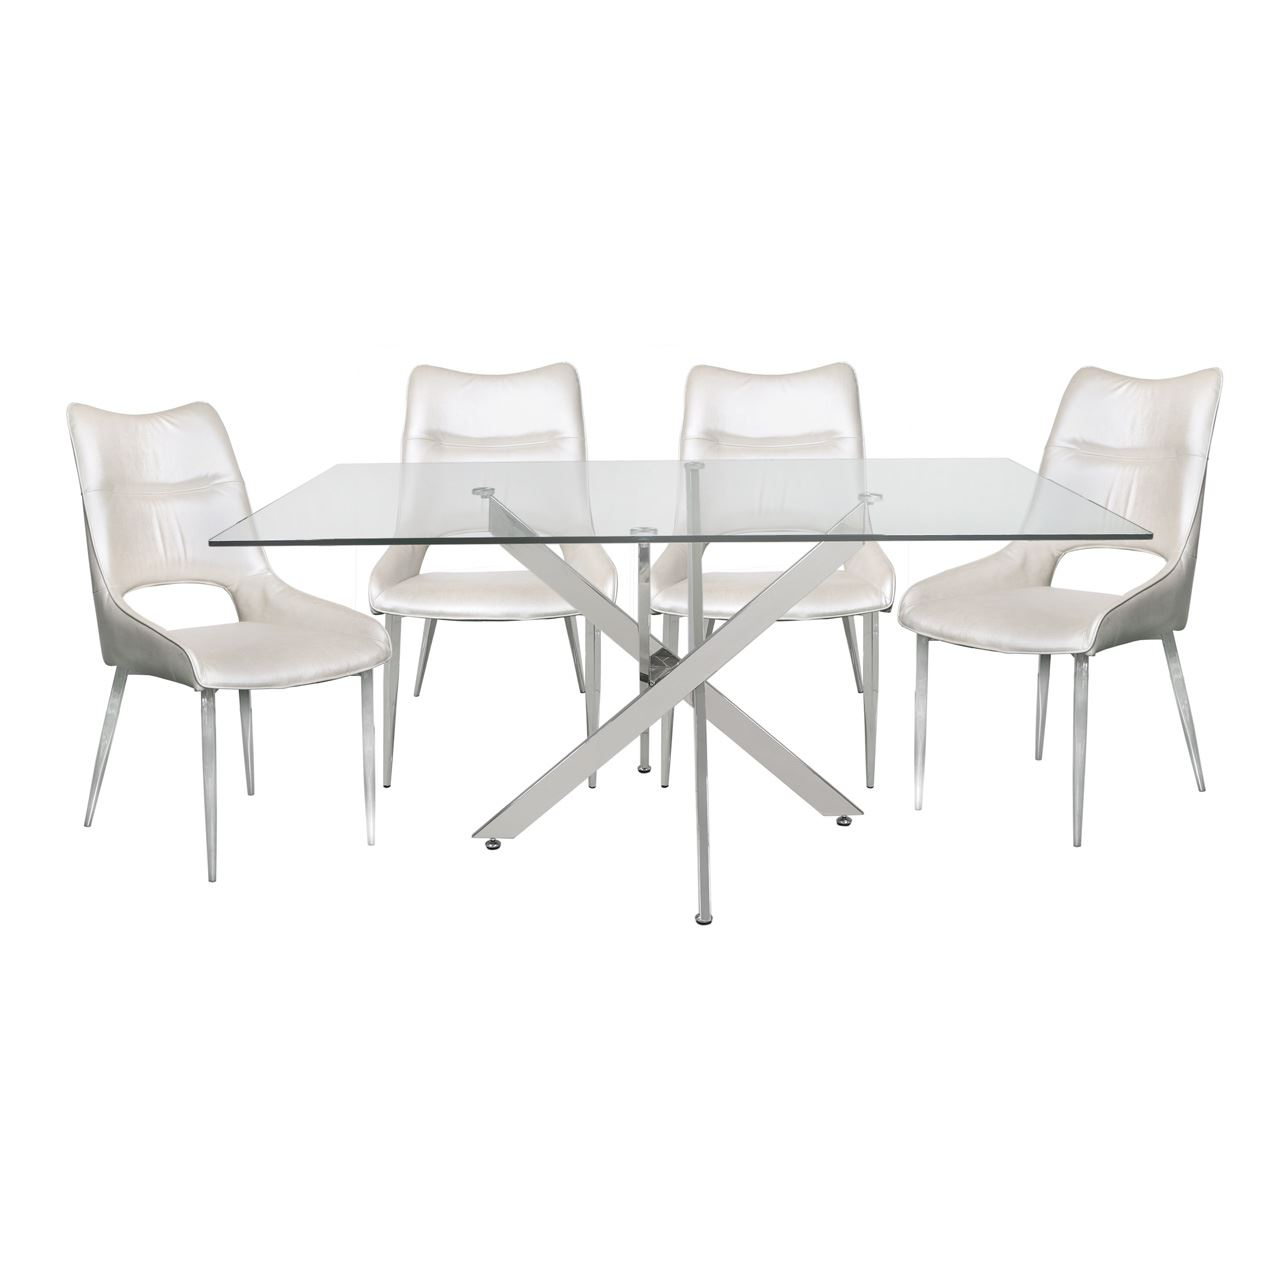 Chrome Dining Tables With Tempered Glass Regarding Most Up To Date Details About Tempered Glass Steel Chrome Rectangular Dining Table And 4  White Adelaide Chairs (Gallery 10 of 30)